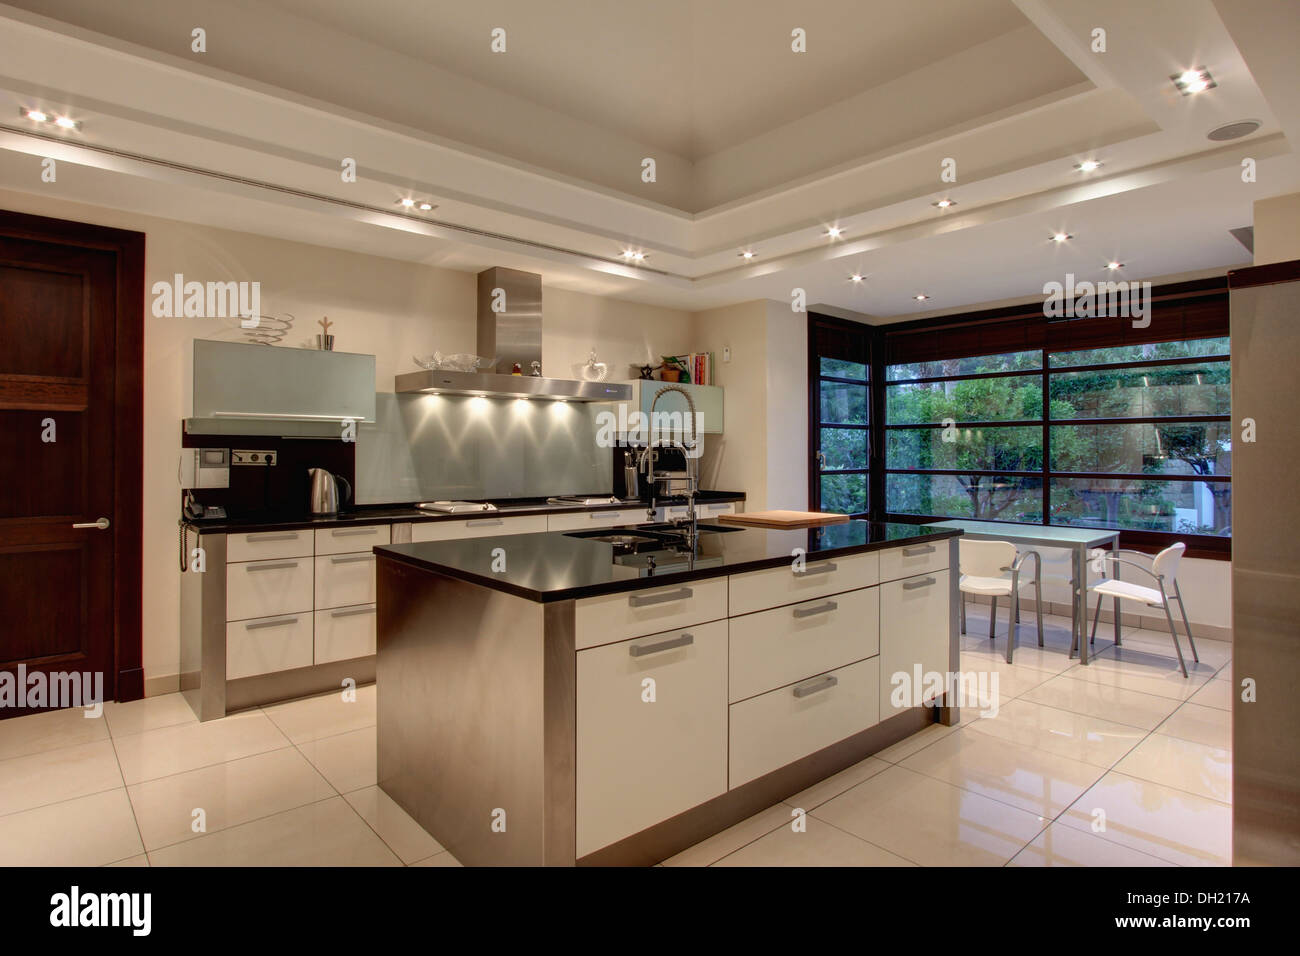 Down Lighting On False Ceiling In Modern Spanish Kitchen With Stock Photo 62125150 Alamy